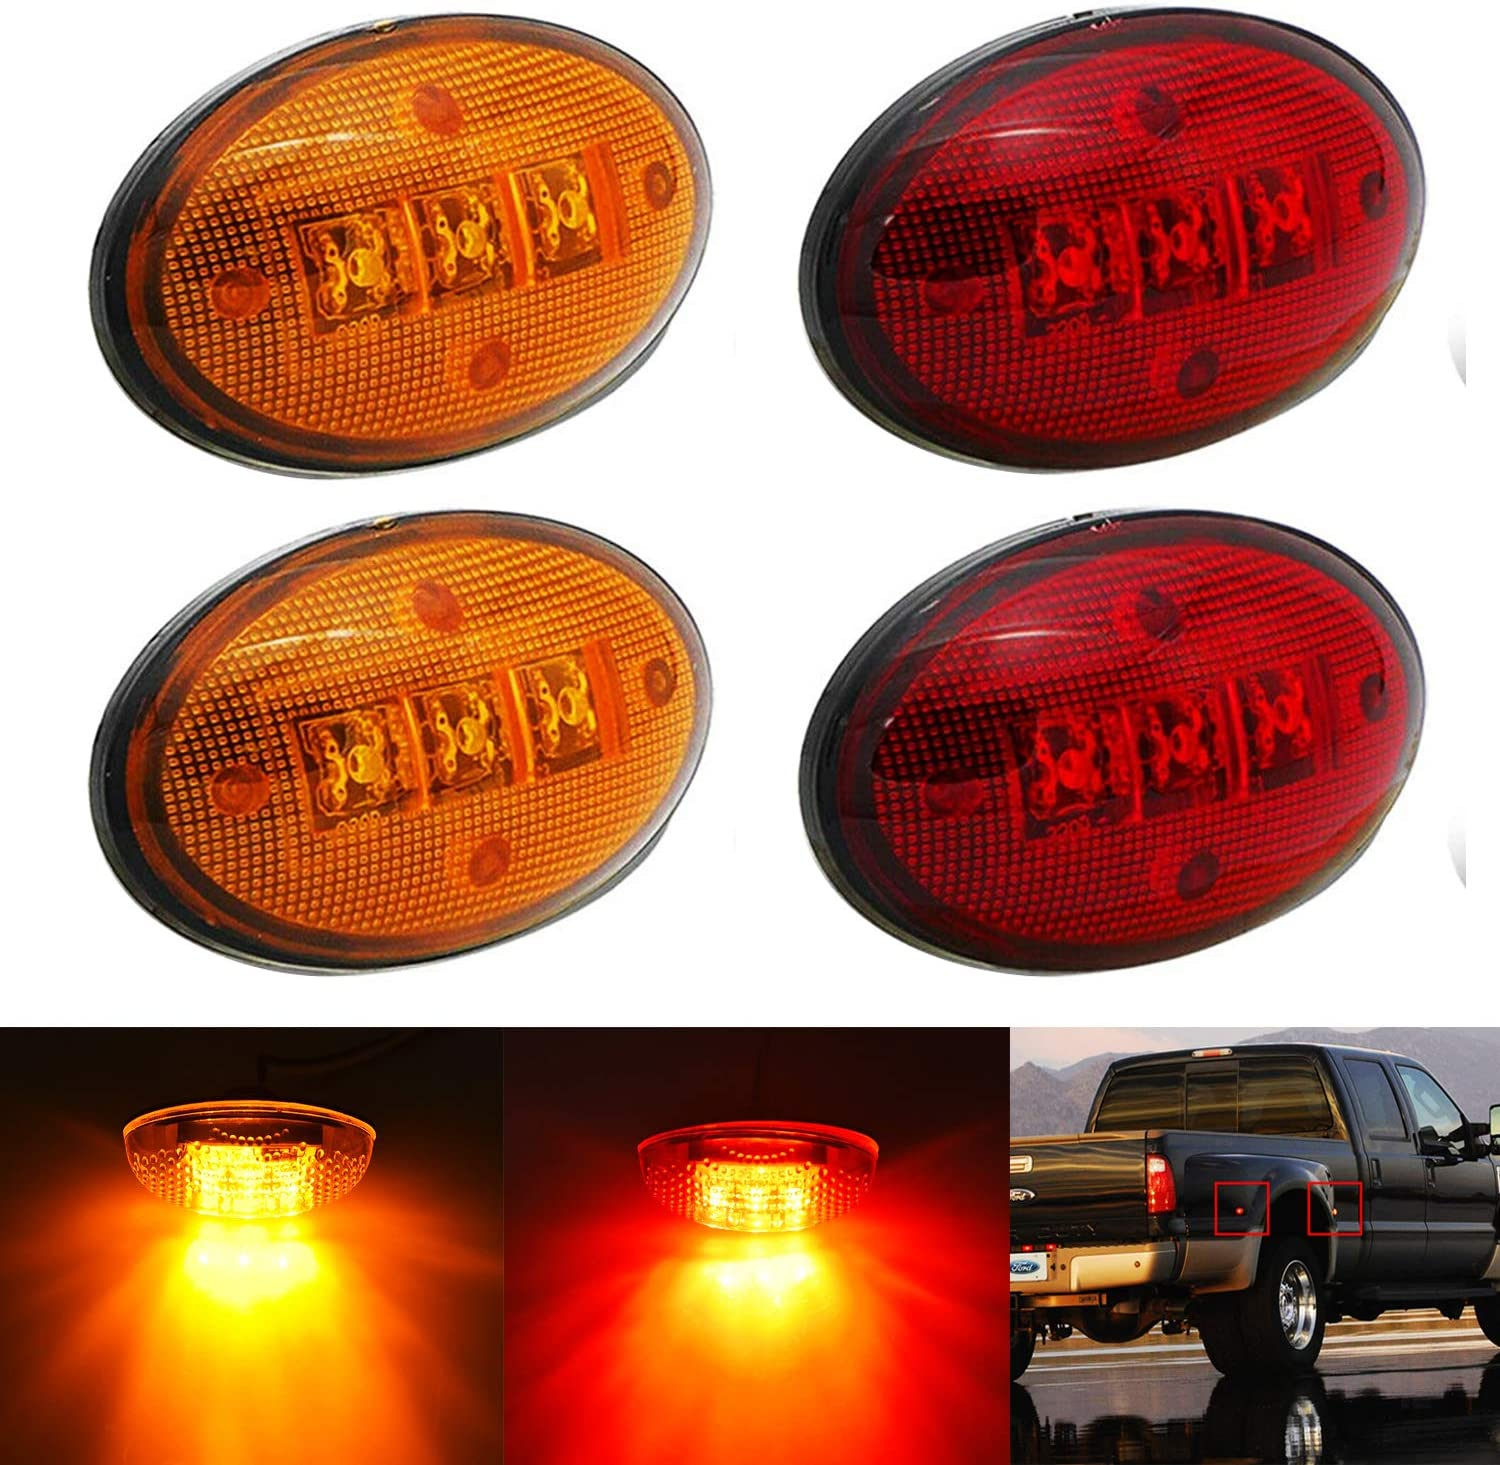 KEING Dually Bed Fender Max 82% OFF Side Marker Ford 1999-202 free Lights For LED